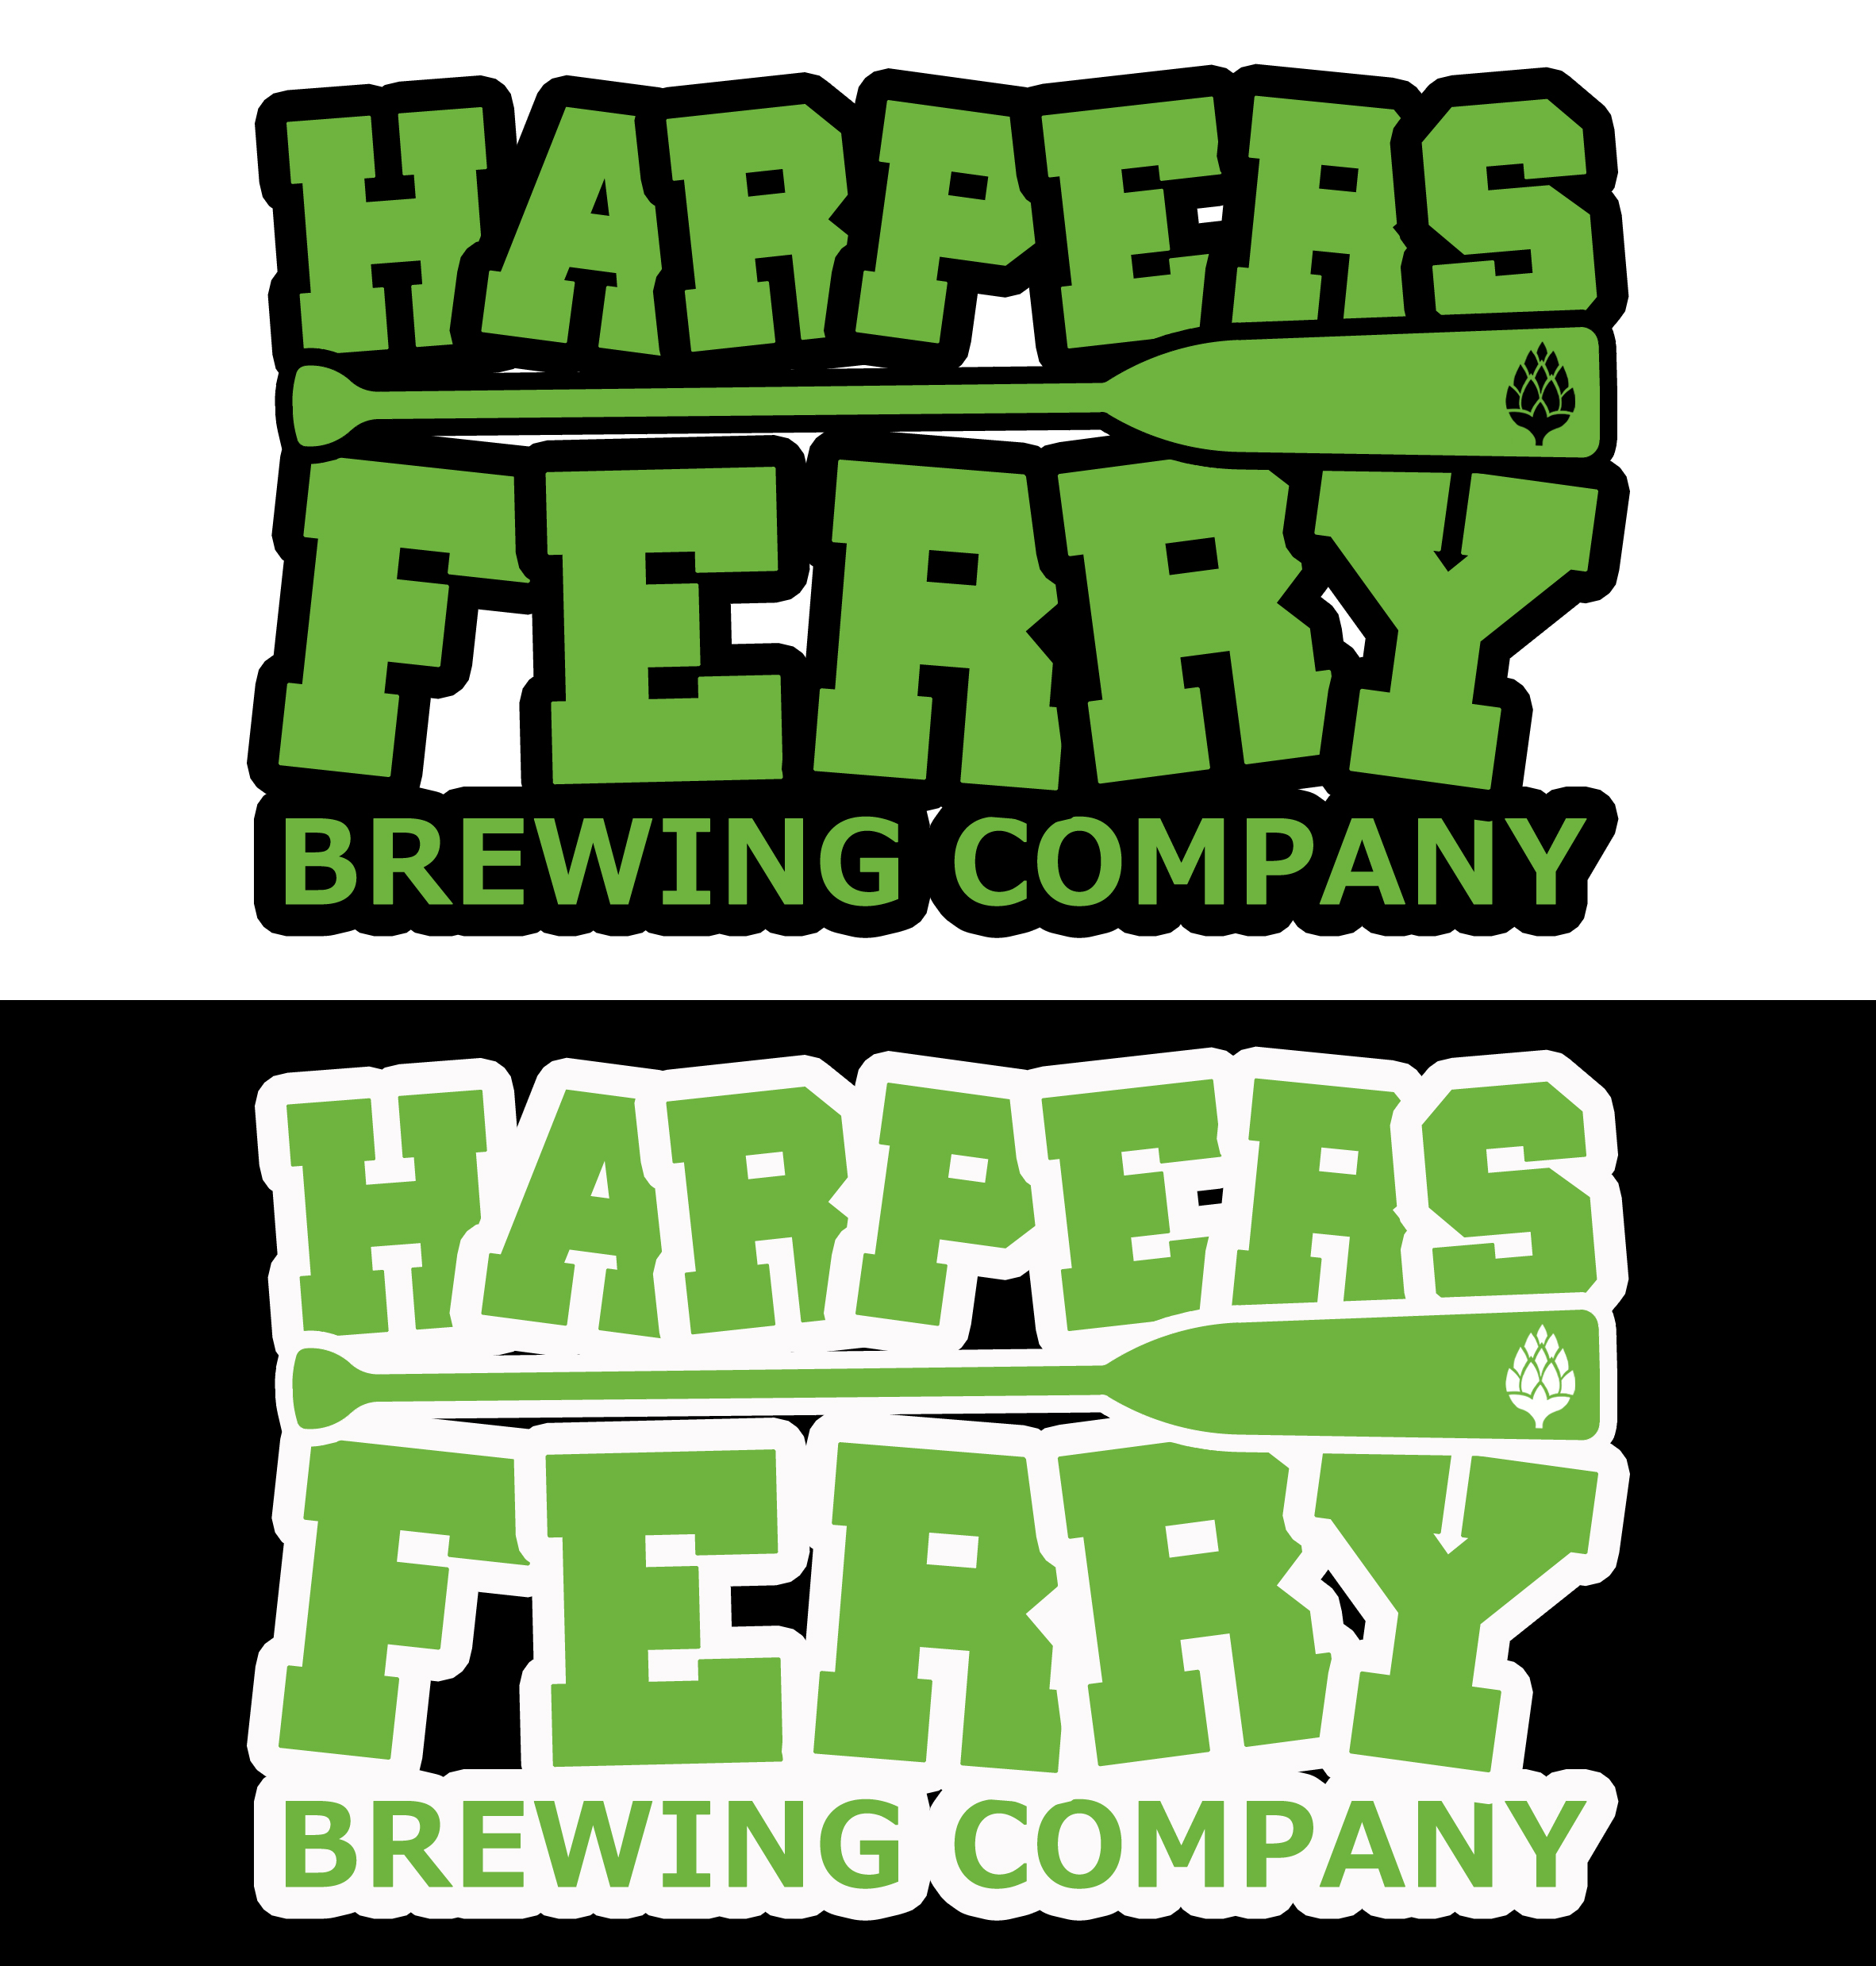 Logo Design by JSDESIGNGROUP - Entry No. 115 in the Logo Design Contest Unique Logo Design Wanted for Harpers ferry brewing company.